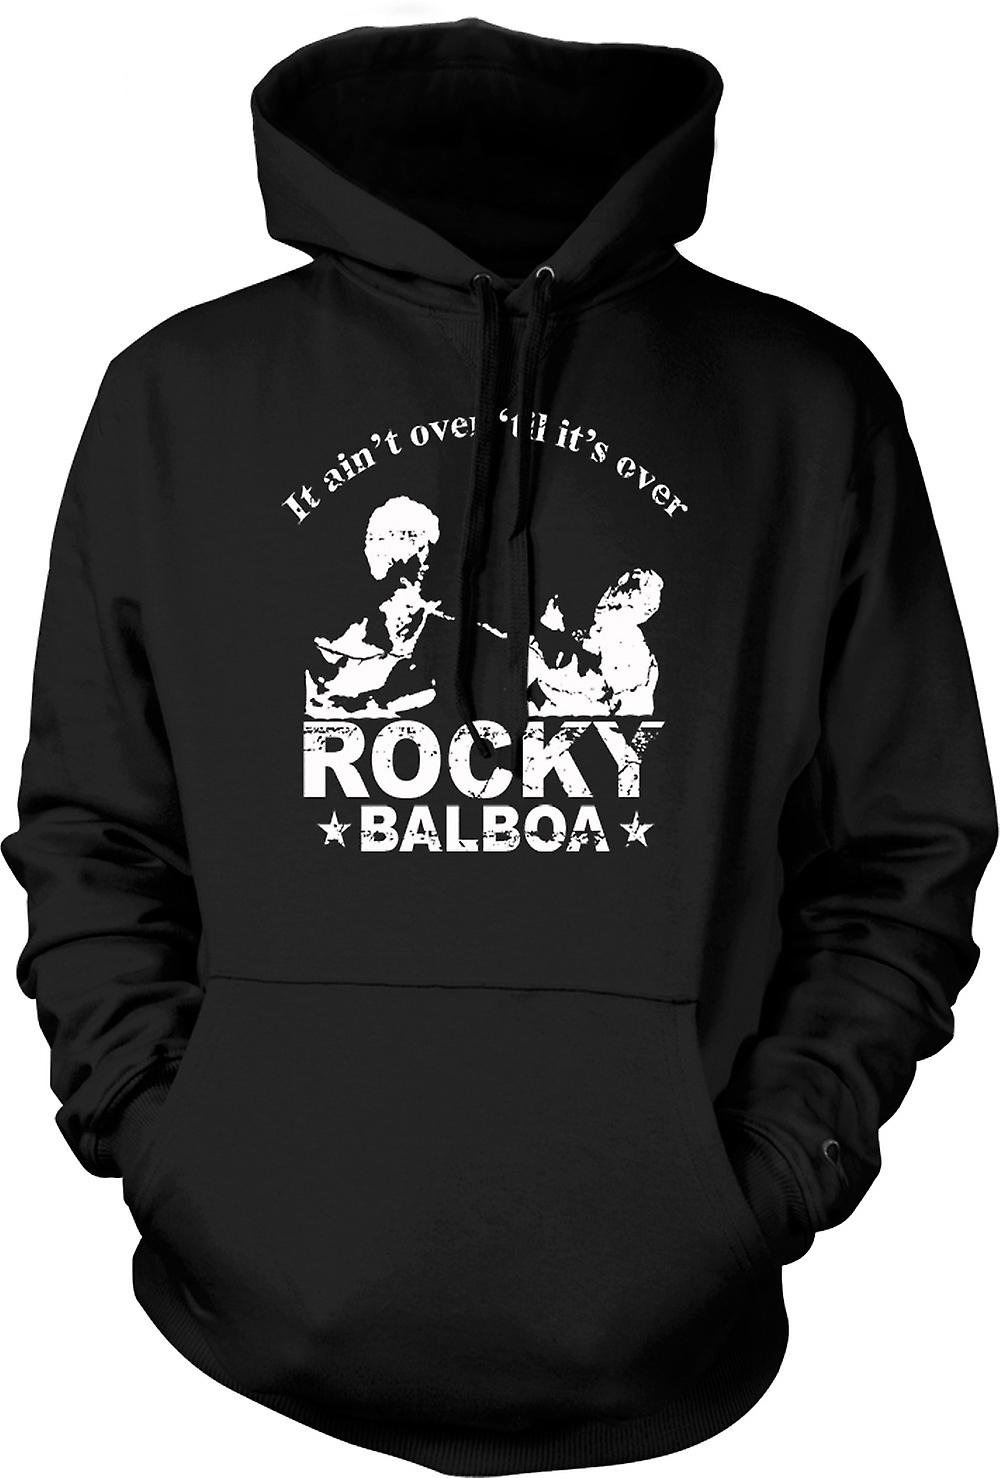 Mens Sweat à capuche - Rocky Balboa Aint Over - boxe - Funny